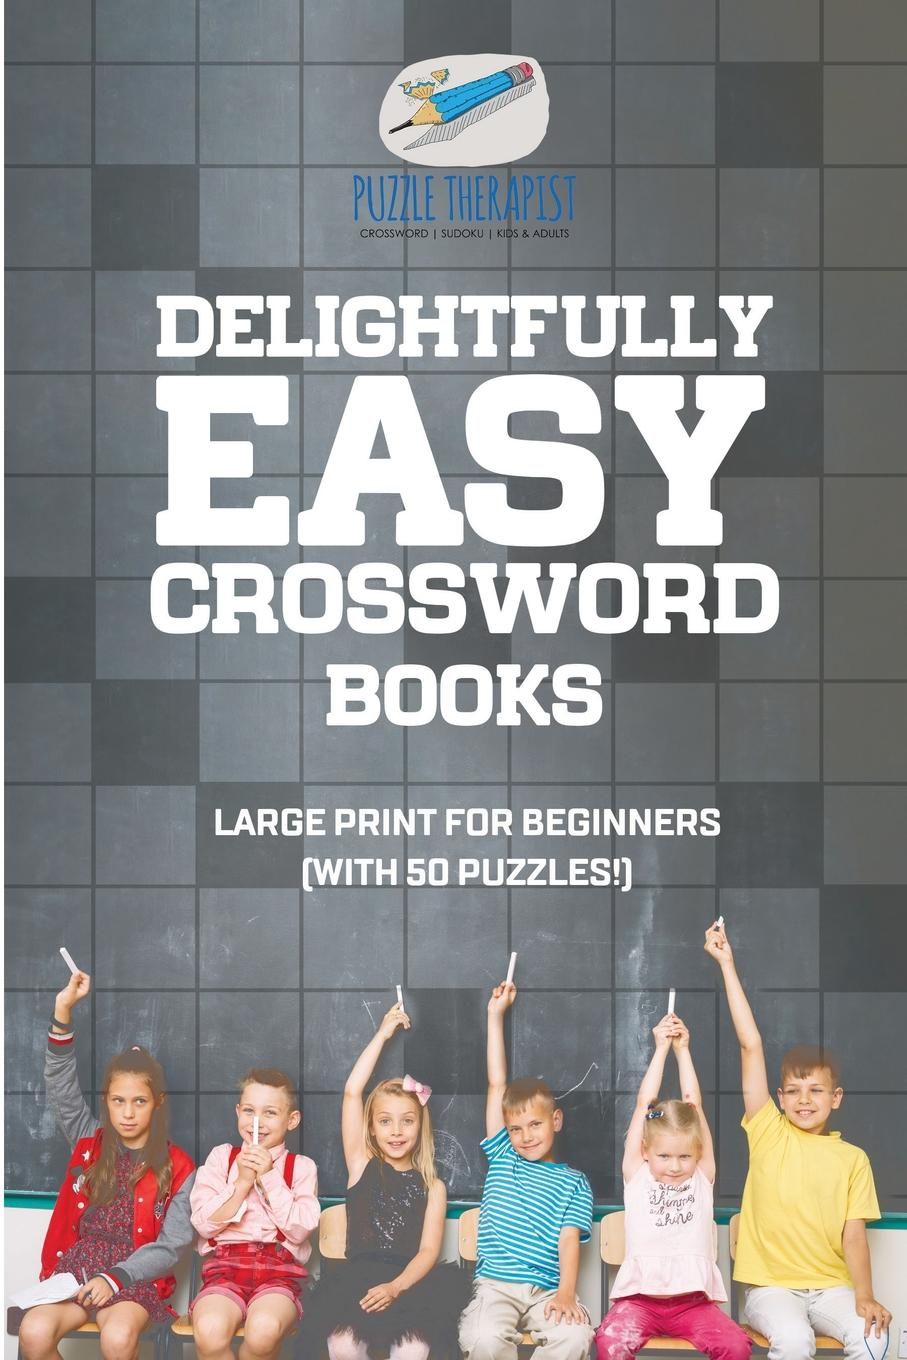 Puzzle Therapist Delightfully Easy Crossword Books . Large Print for Beginners (with 50 puzzles.) you choose